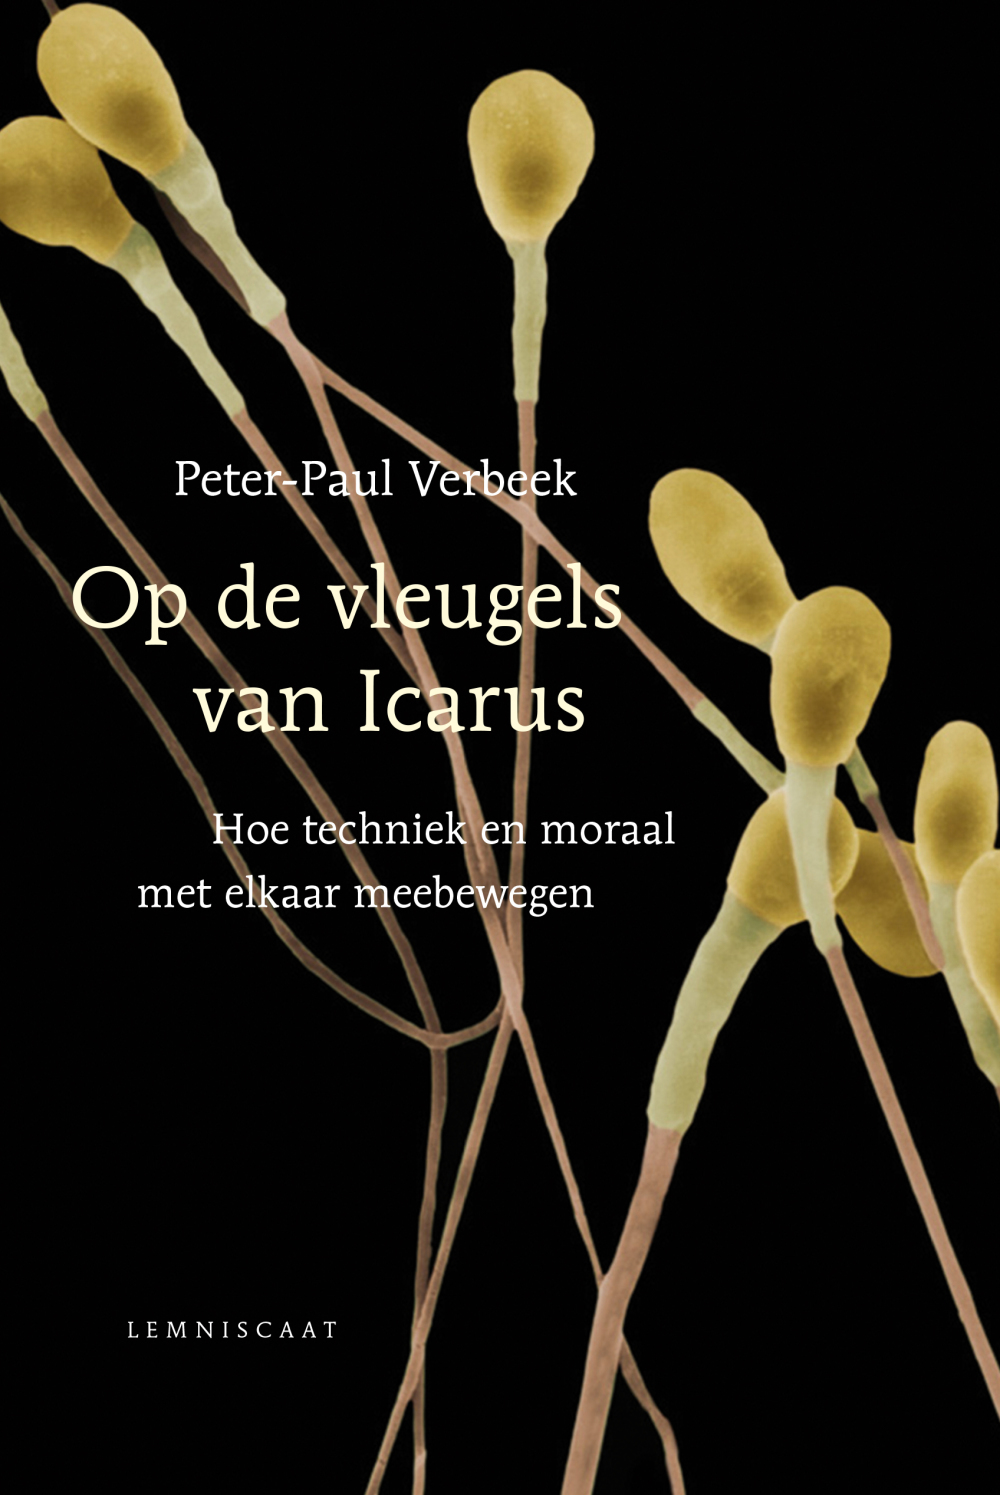 On the wings of Icarus: how technology and morality develop in concert. By Peter-Paul Verbeek.